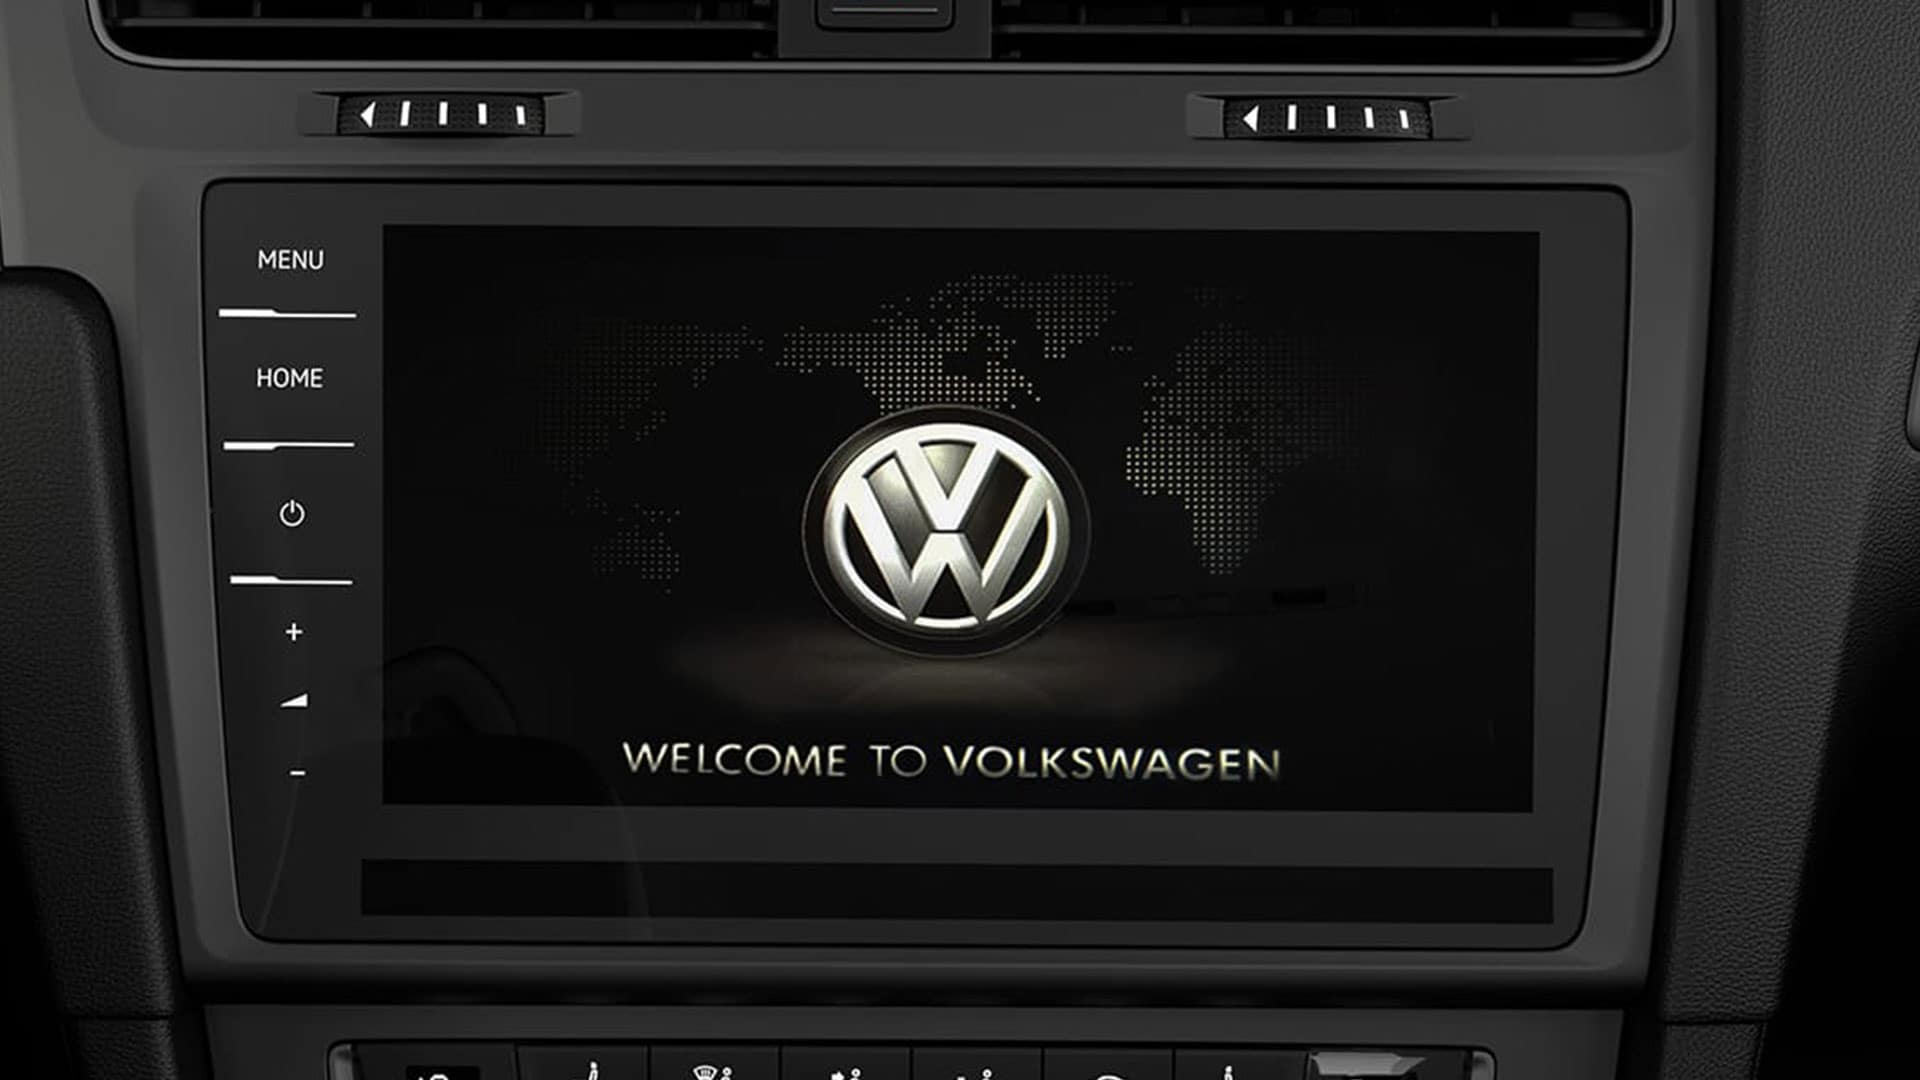 2019 VW e-Golf discovery pro display